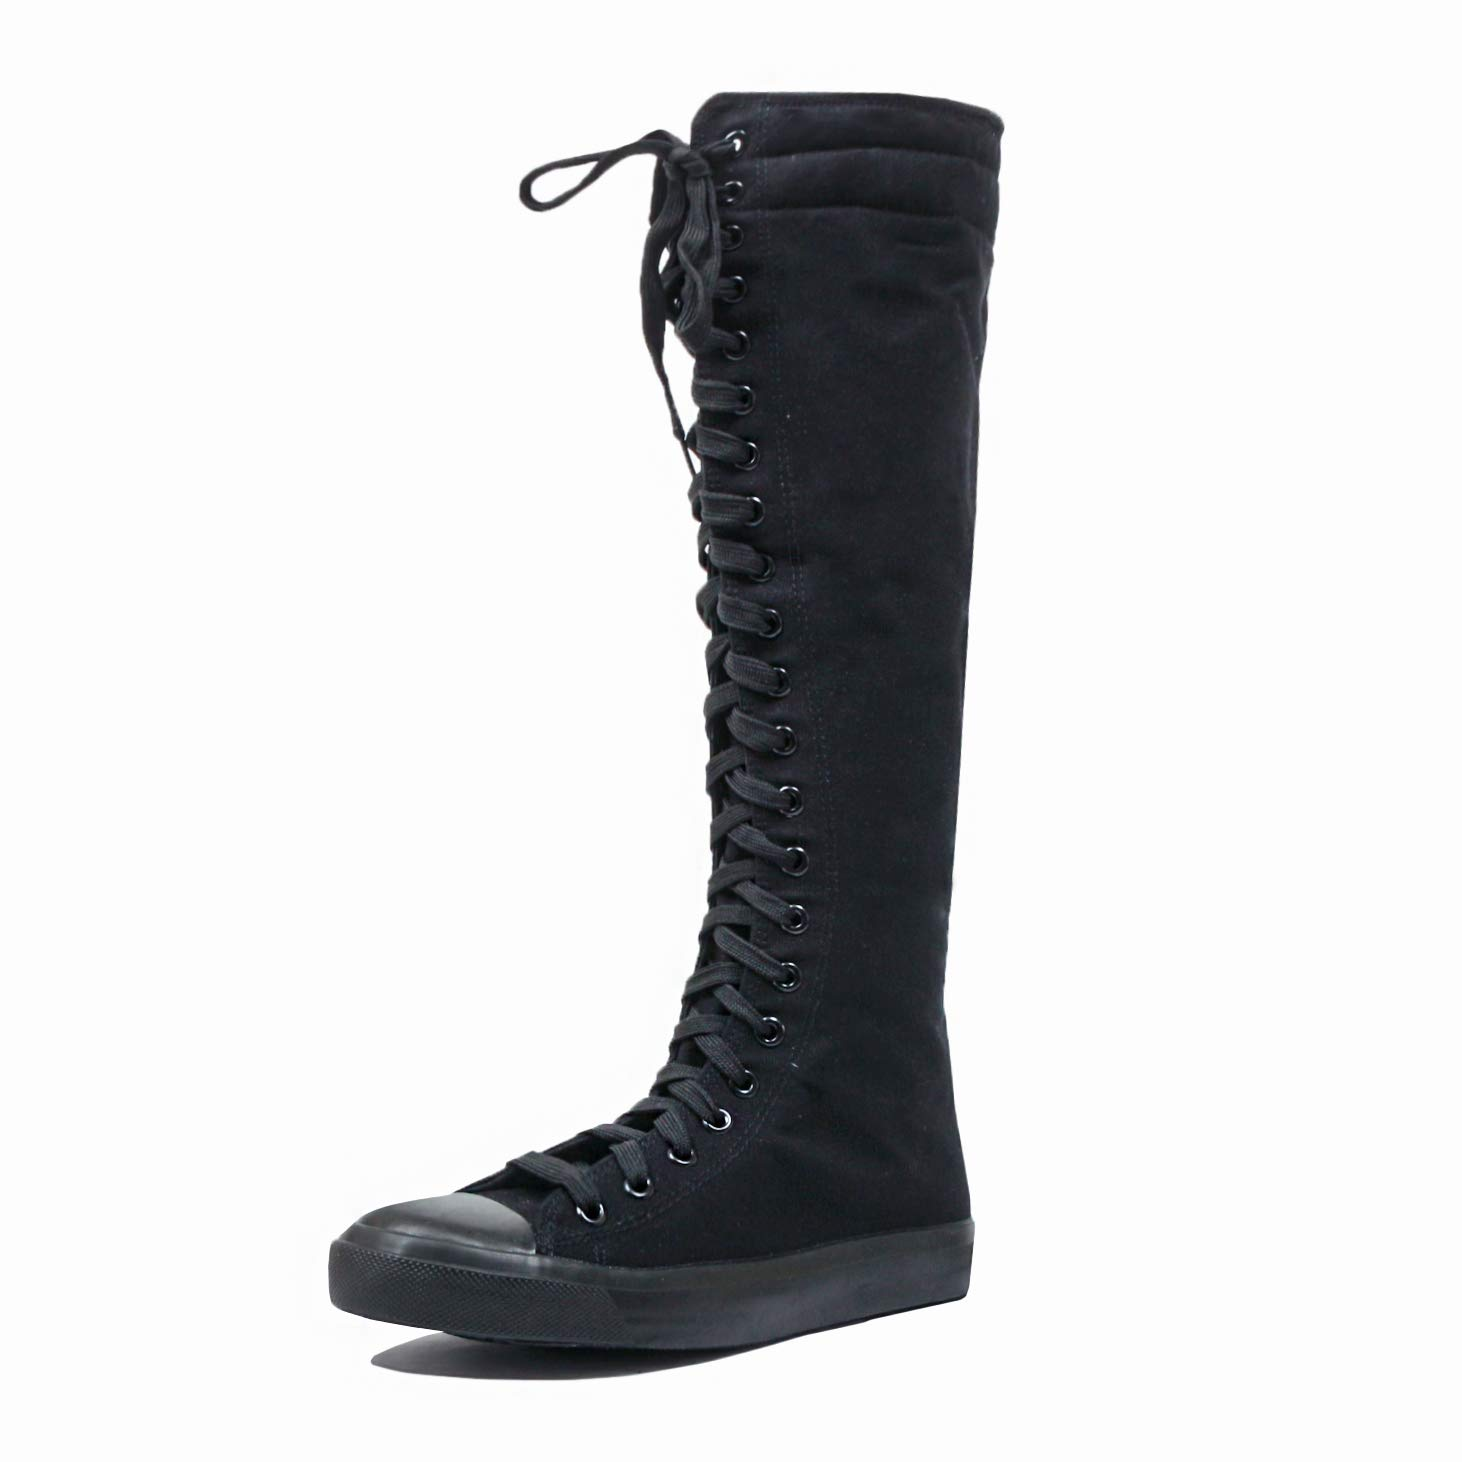 Women's Tall Canvas Lace up Knee High Sneakers BK 9